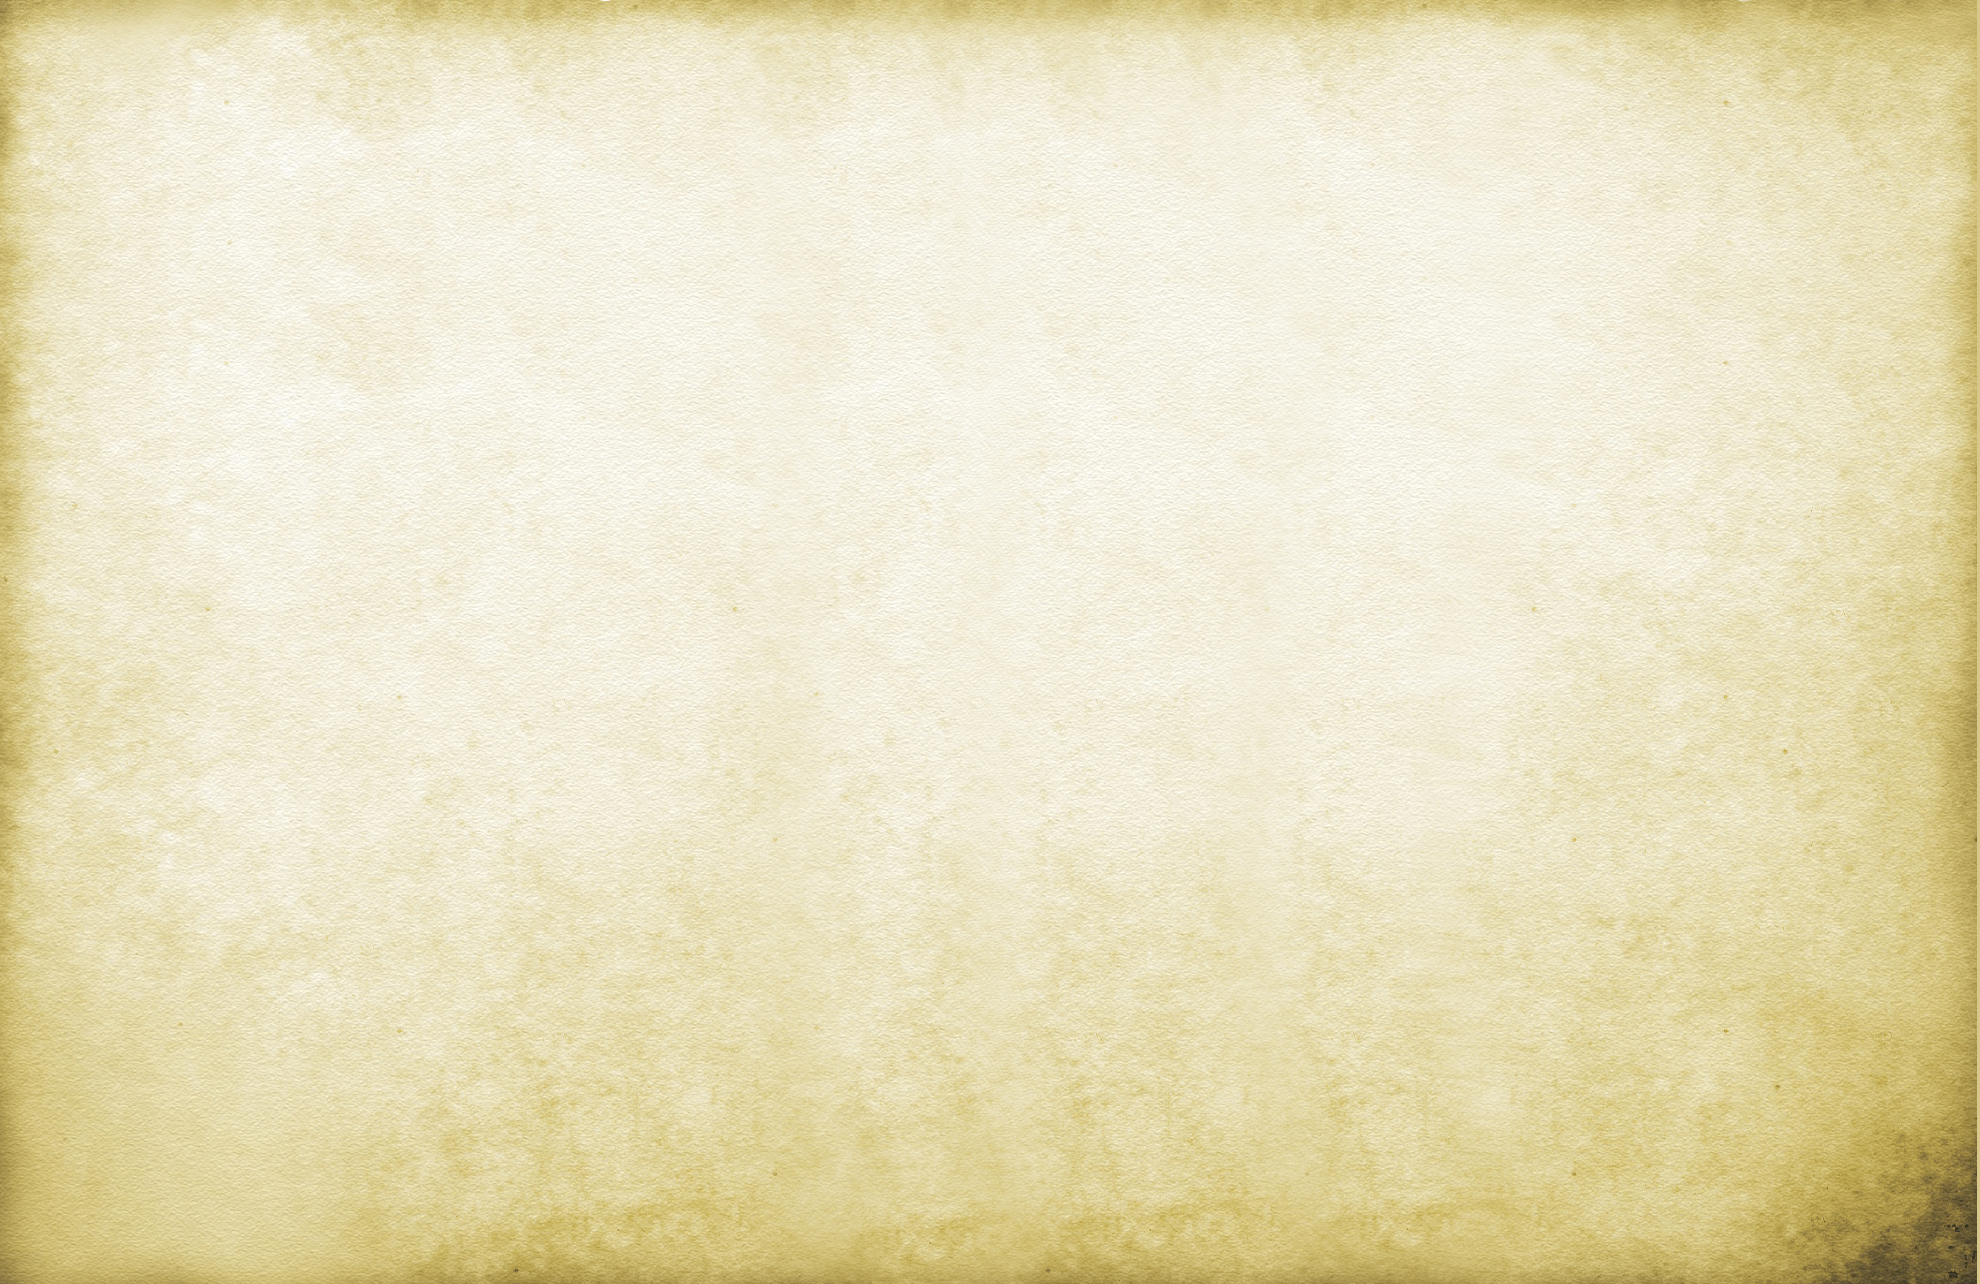 free antique background hd